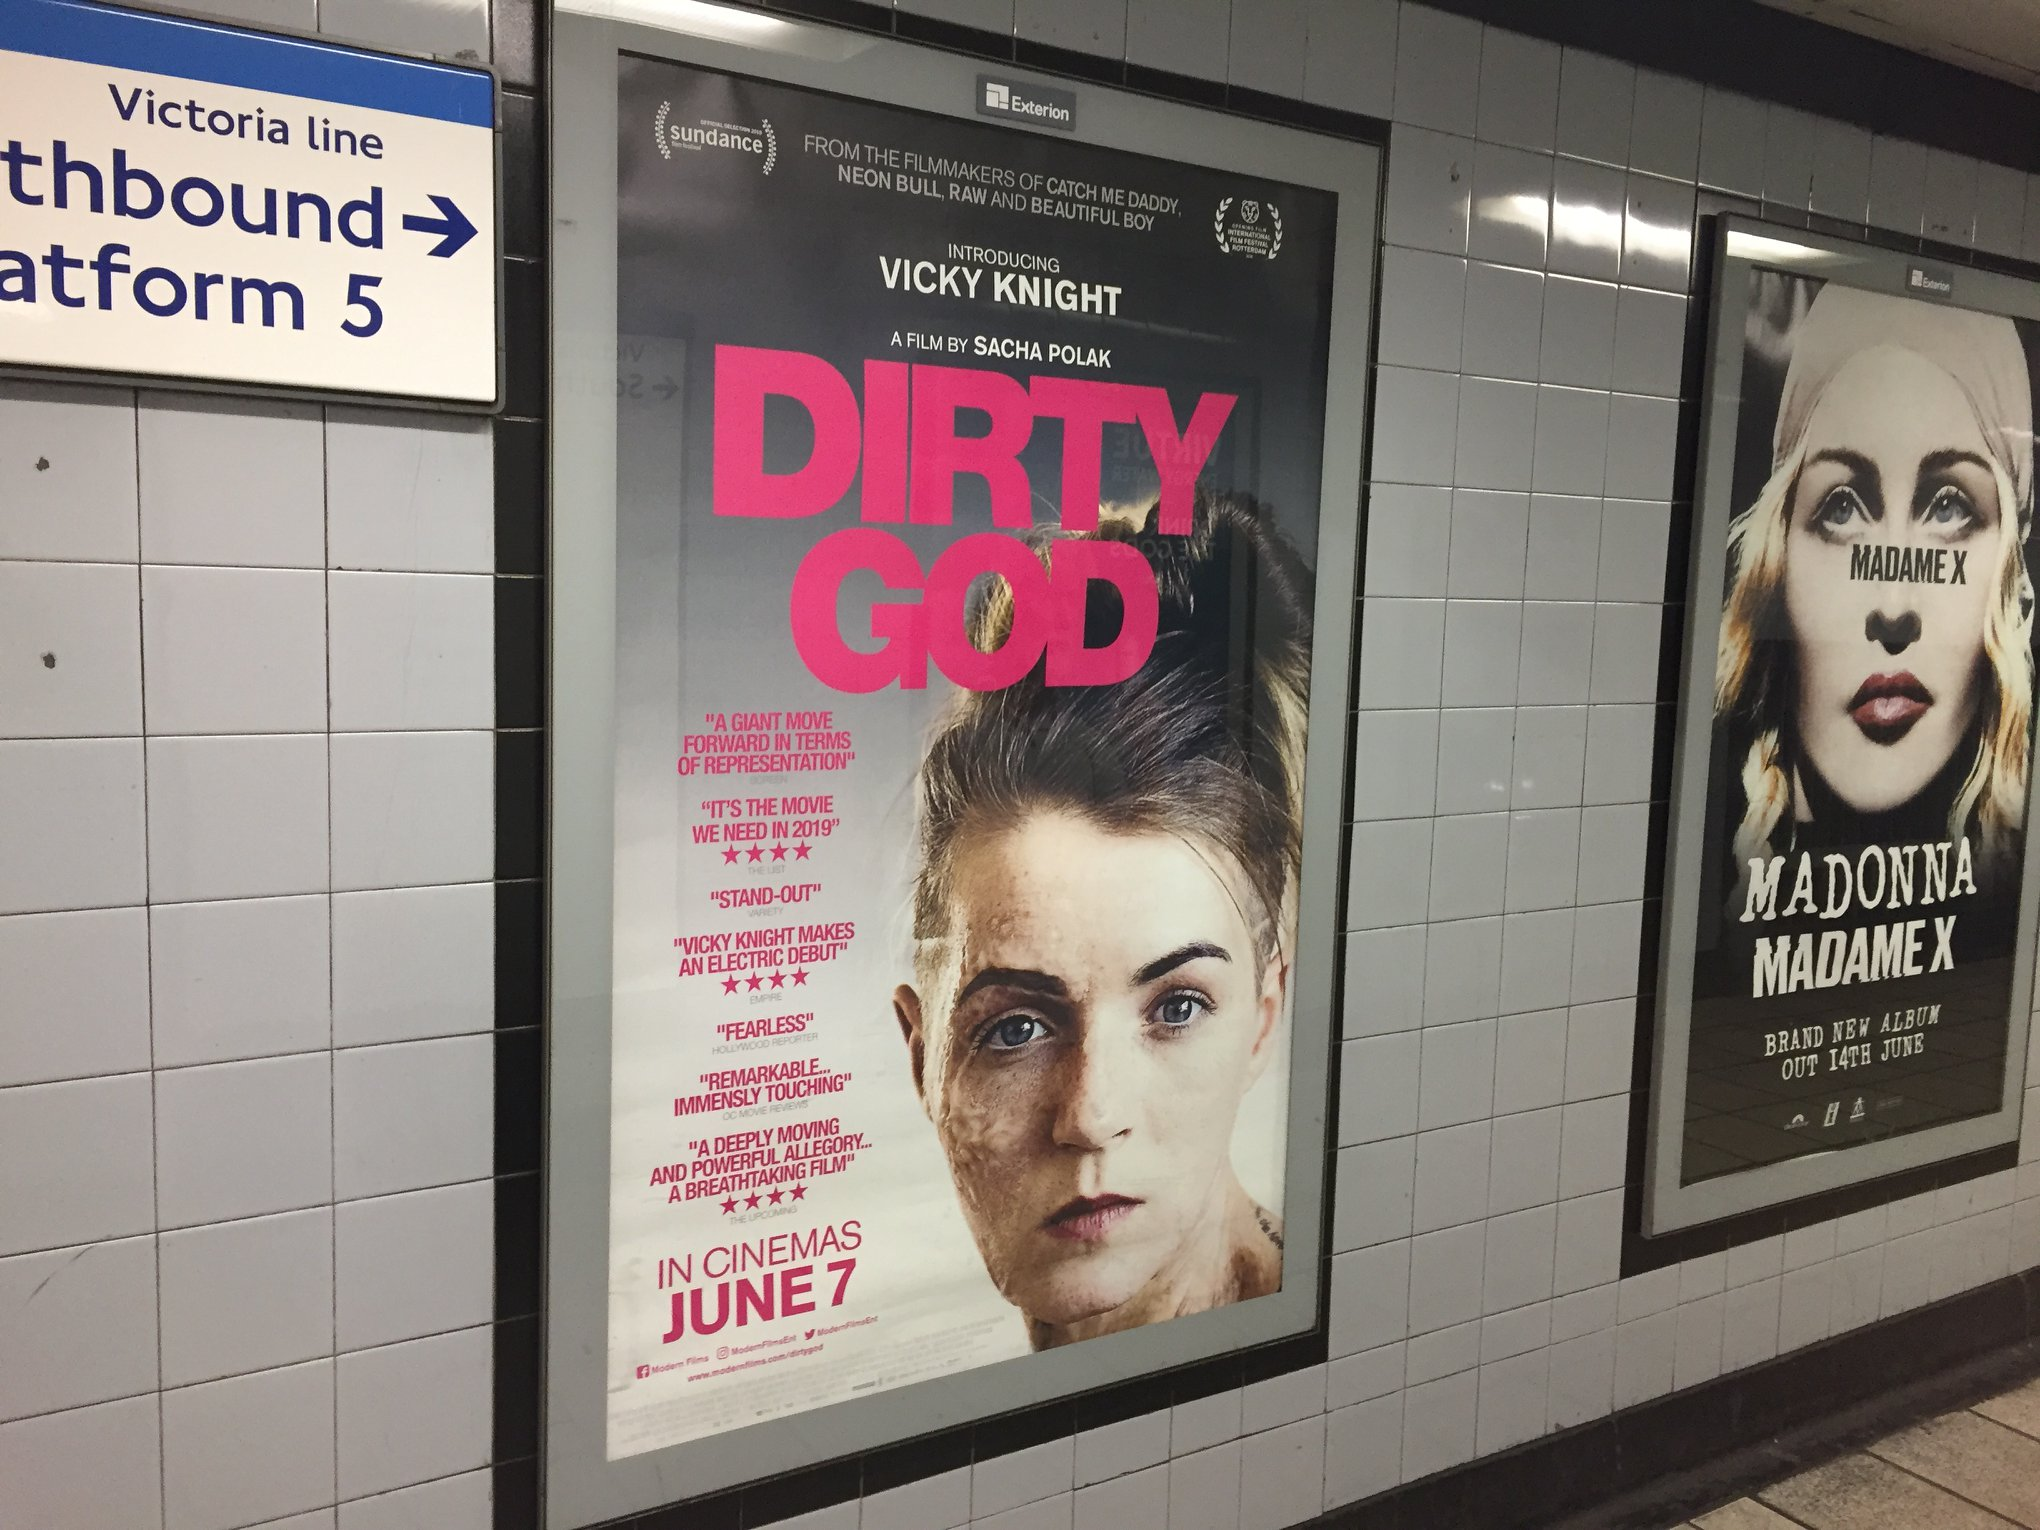 Dirty God in the Tube